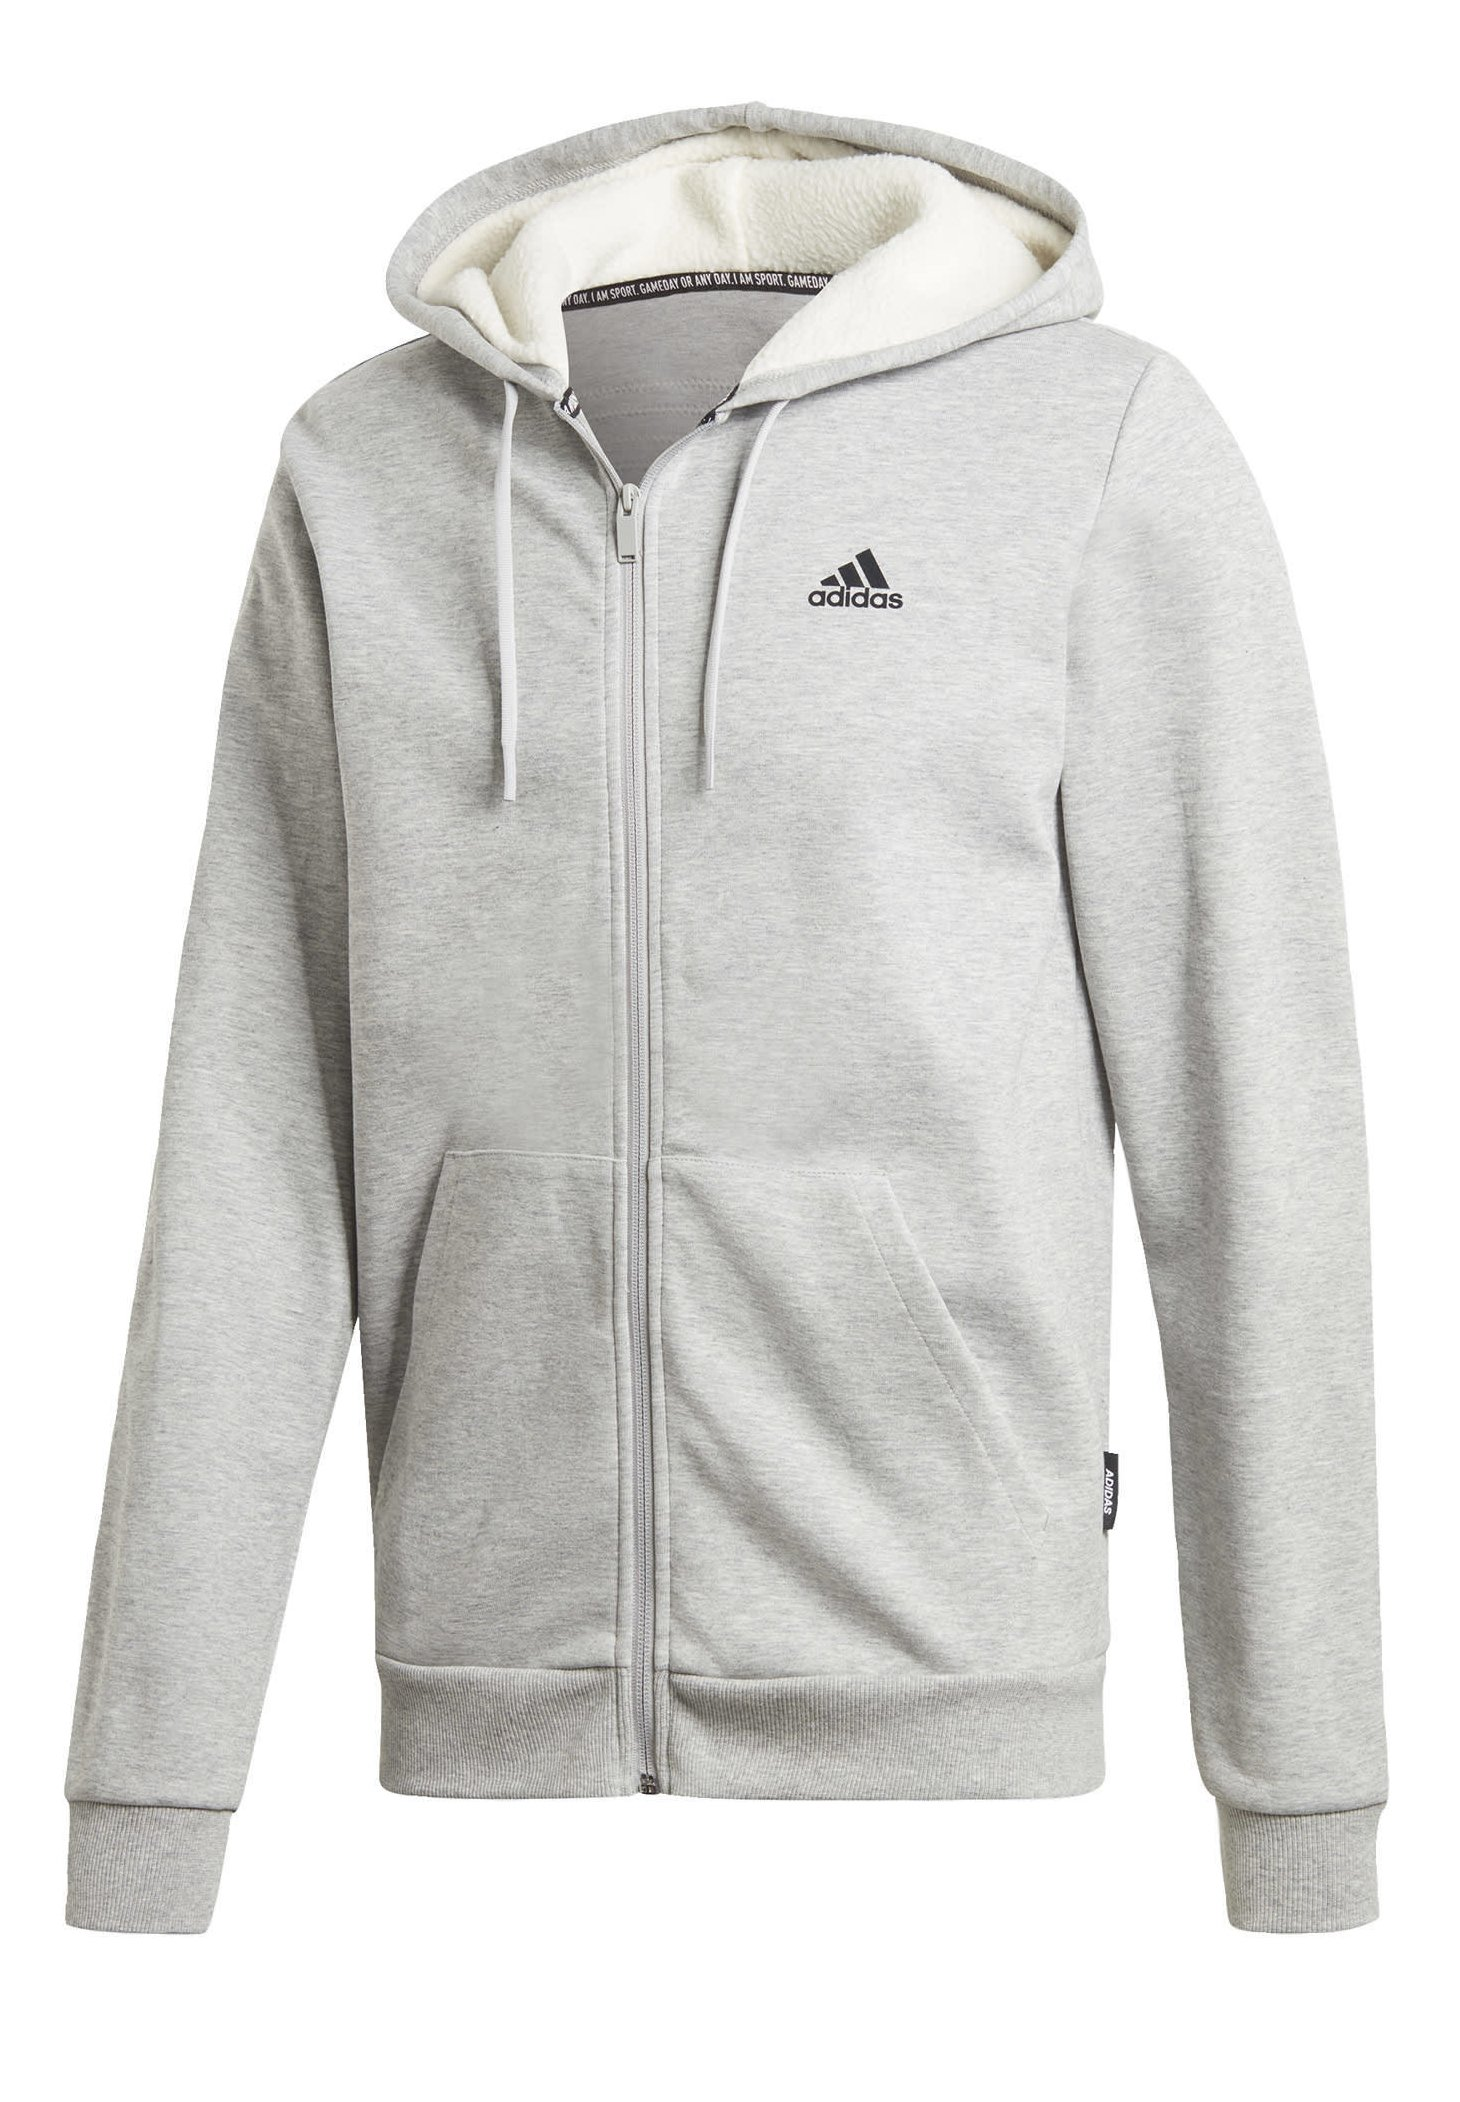 WINTER 3 STRIPES FULL ZIP HOODIE Sweatjacke grey